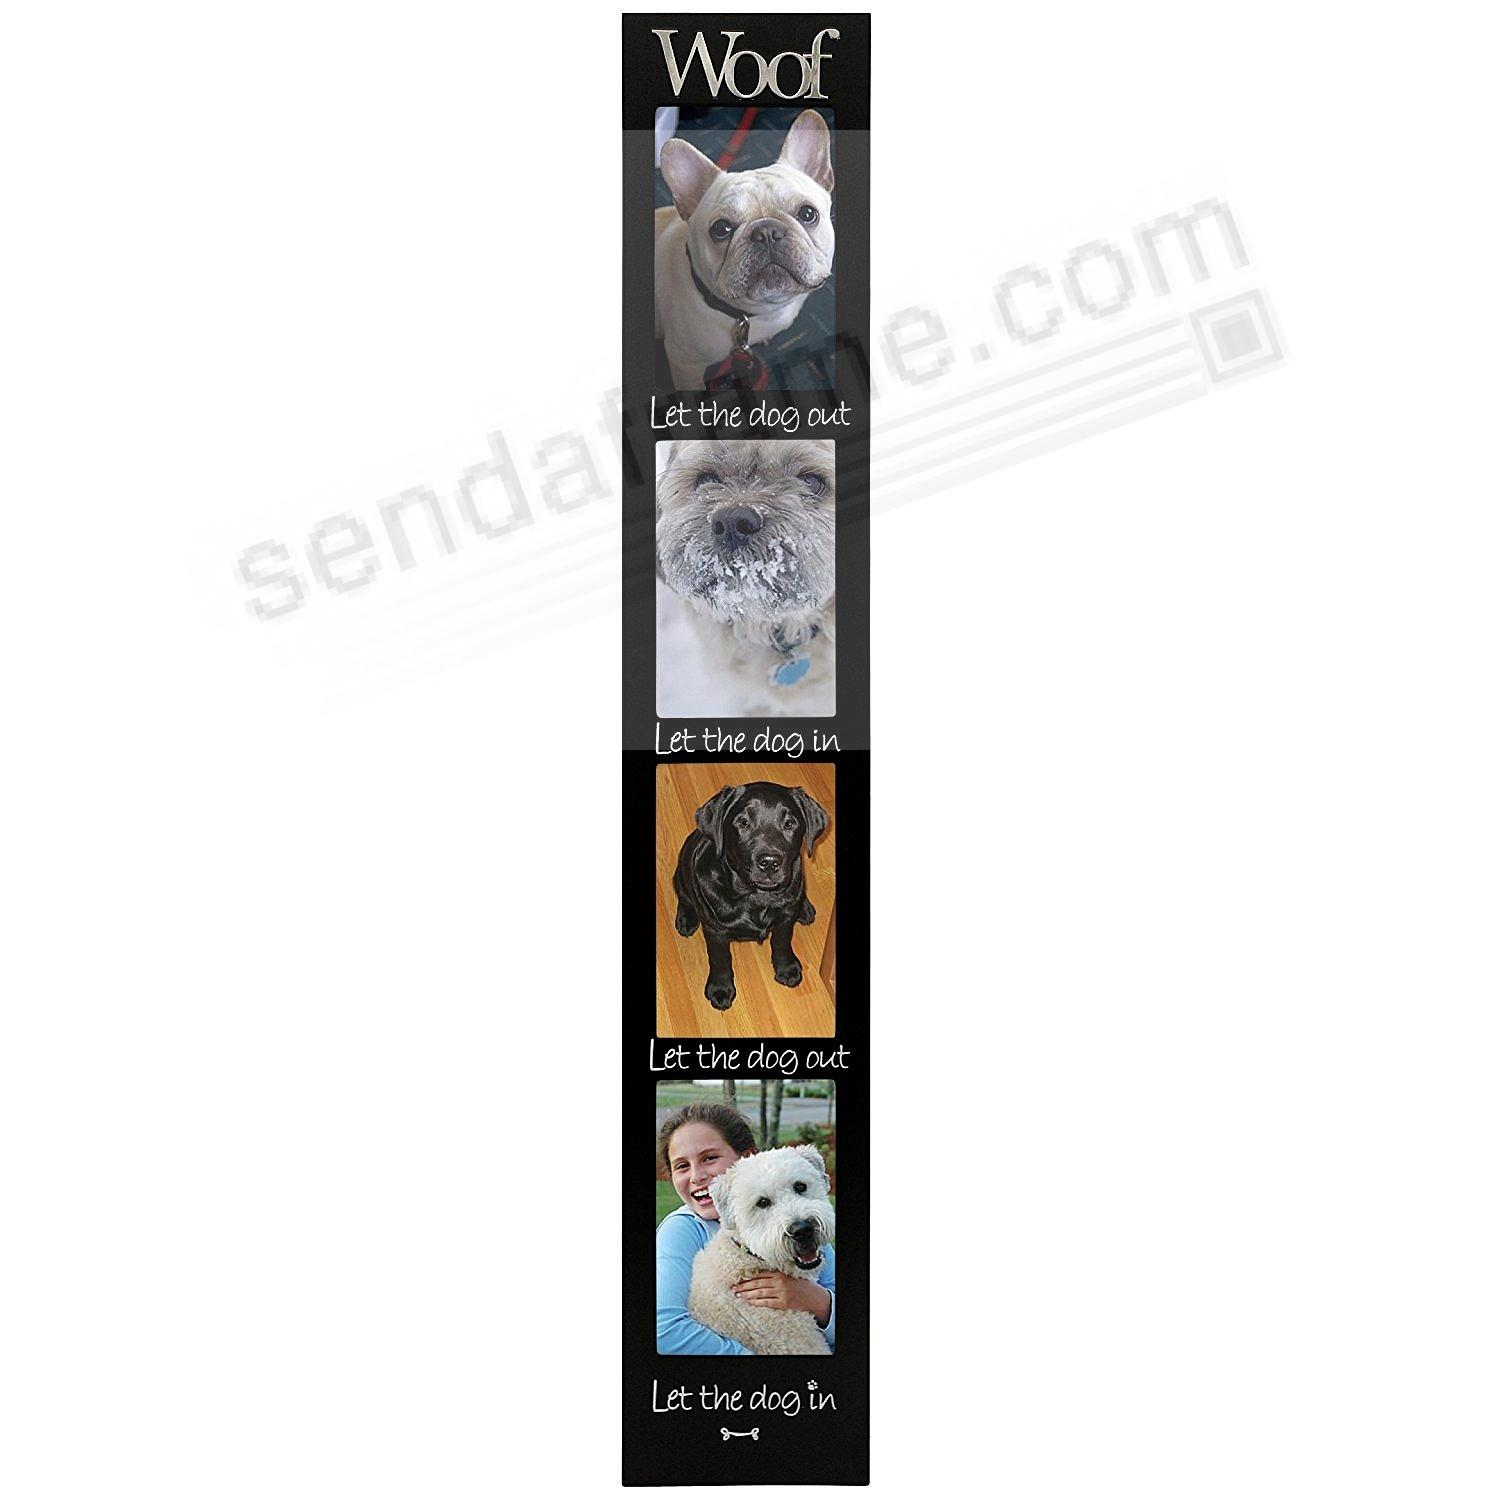 WOOF keepsake MEMORY STICK collage frame by Malden®